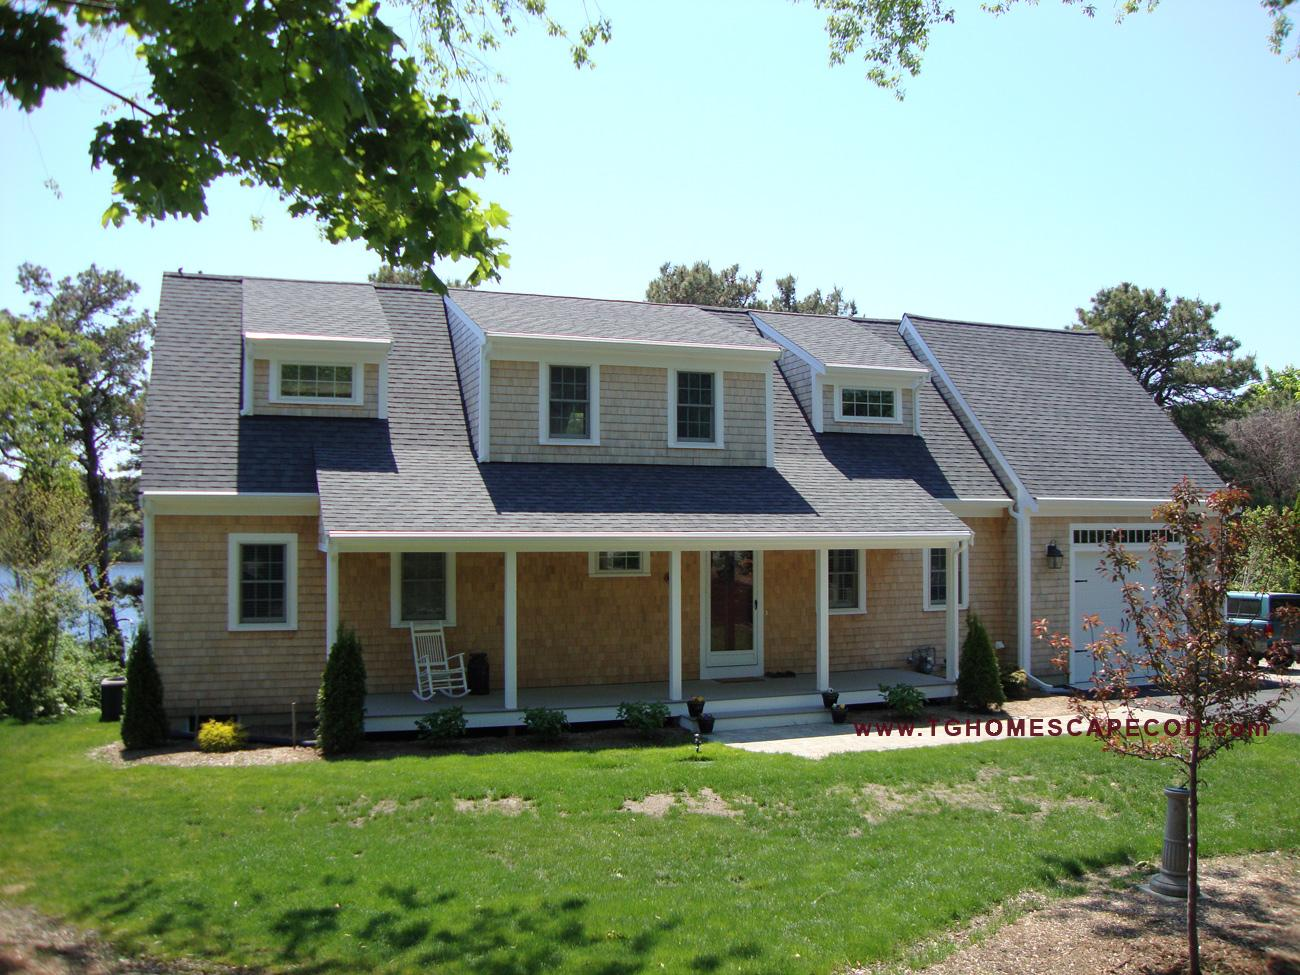 Tg homes cape cod home design build services new for New homes cape cod